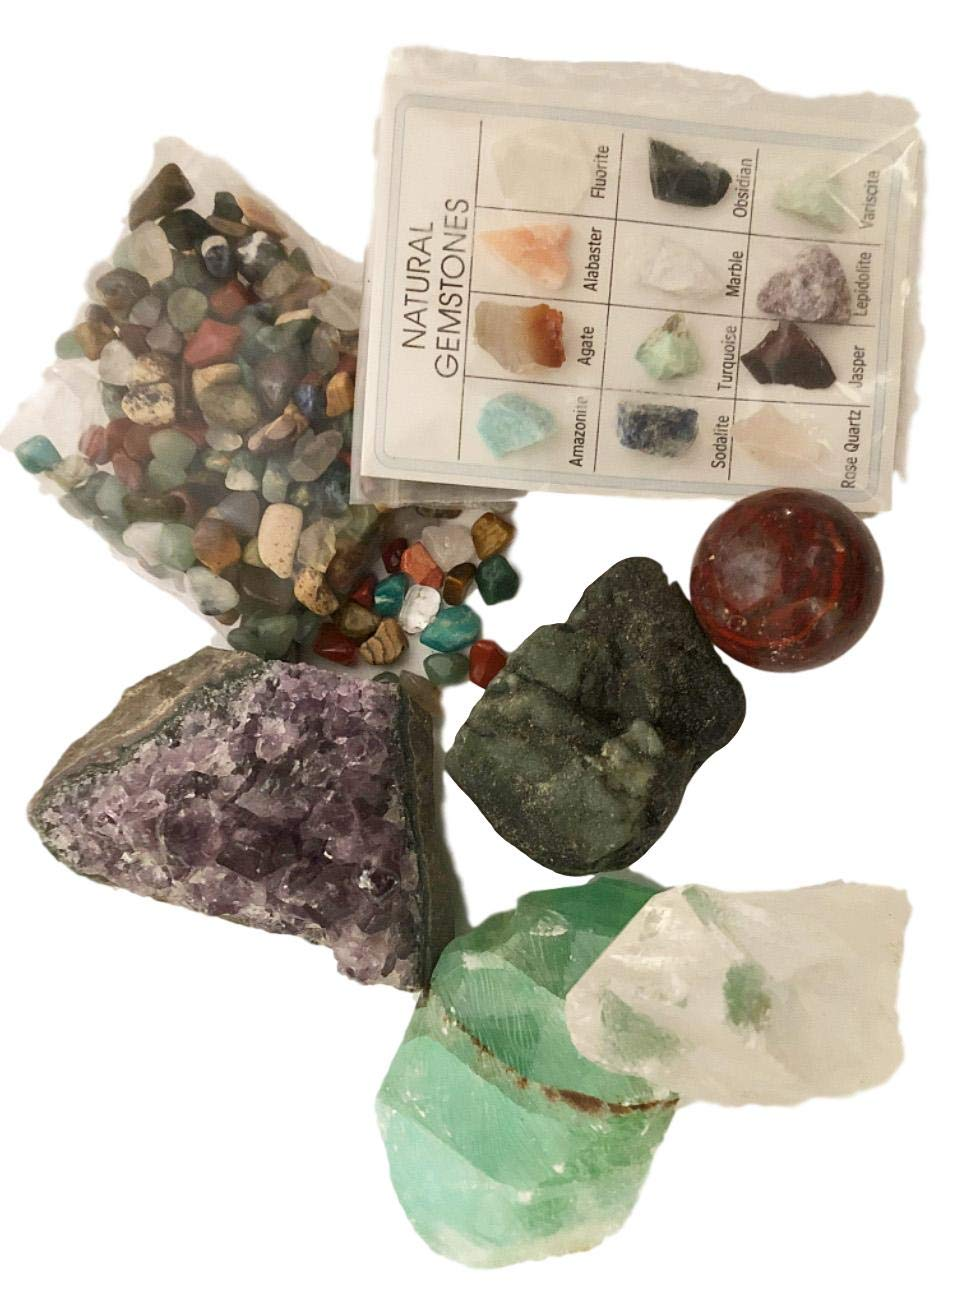 Rock & Mineral Gift Collection - Real Emerald, Amethyst, Calcite, Quartz, Jasper and Polished agates with Bonus Mineral ID Chart - 100+ Pieces with Gift Box - dinosaursrocksuperstore